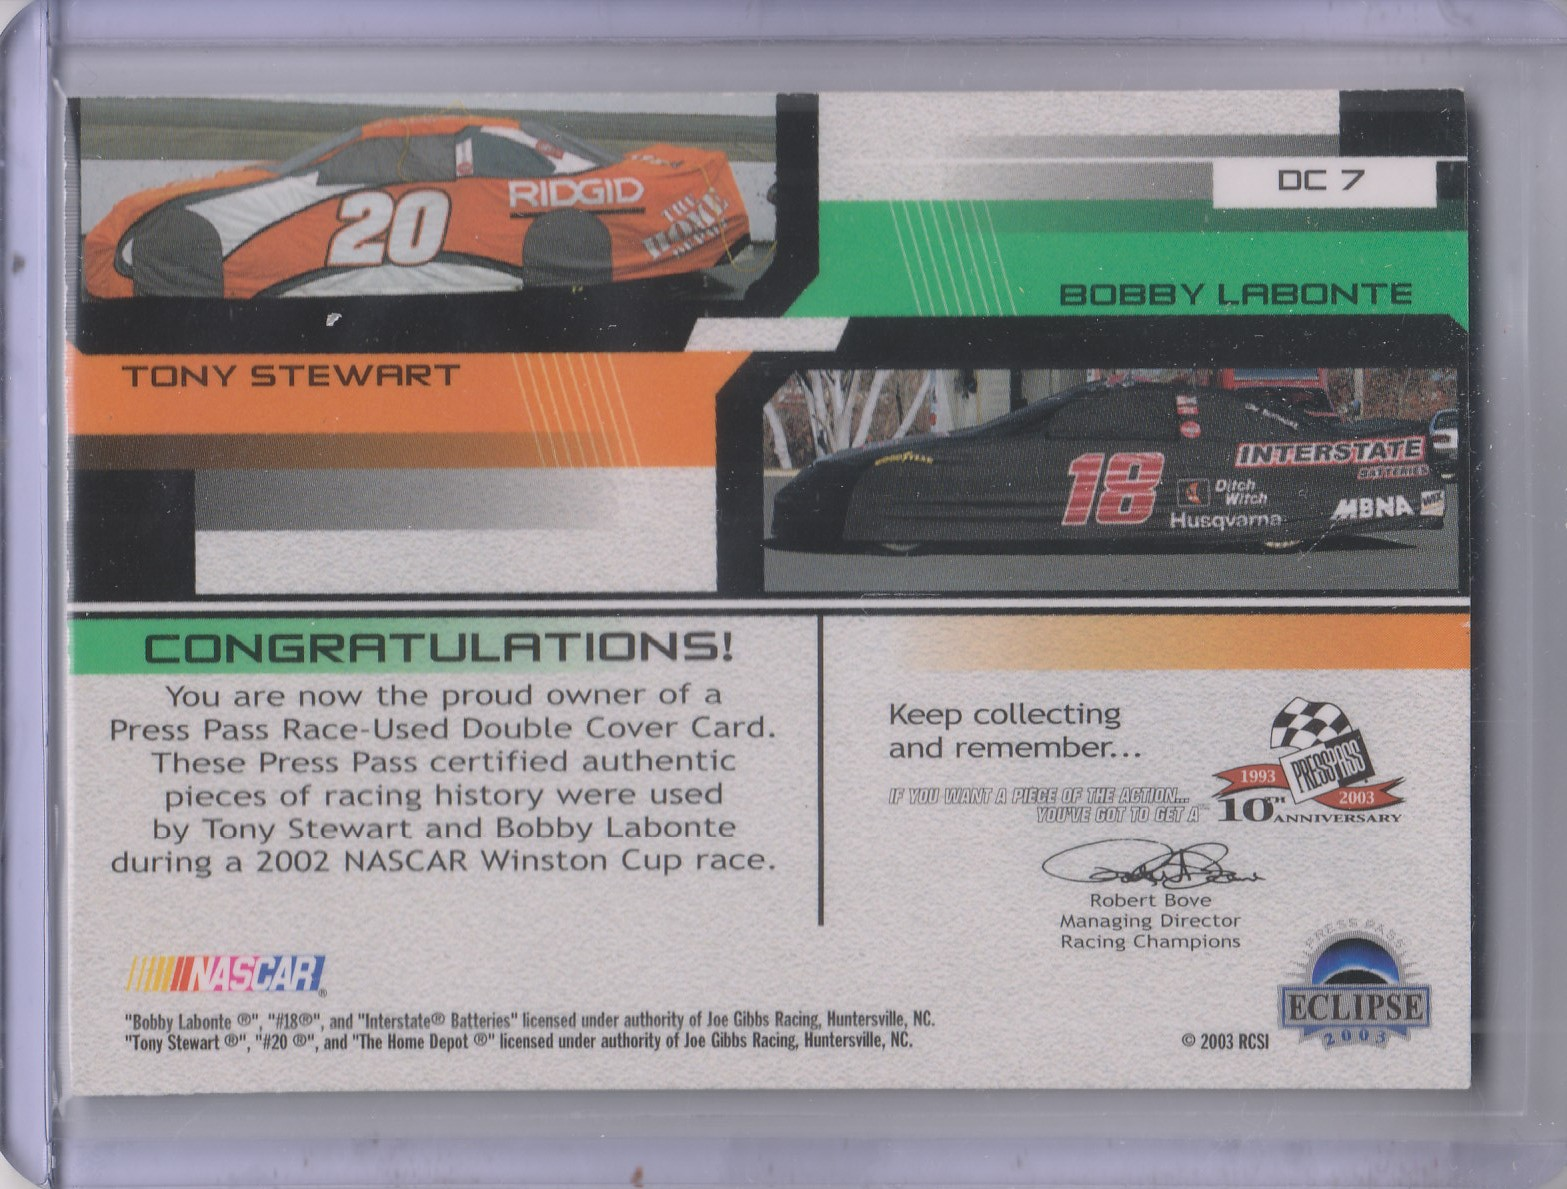 2003 Press Pass Eclipse Under Cover Double Cover #DC7 Bobby Labonte/Tony Stewart back image